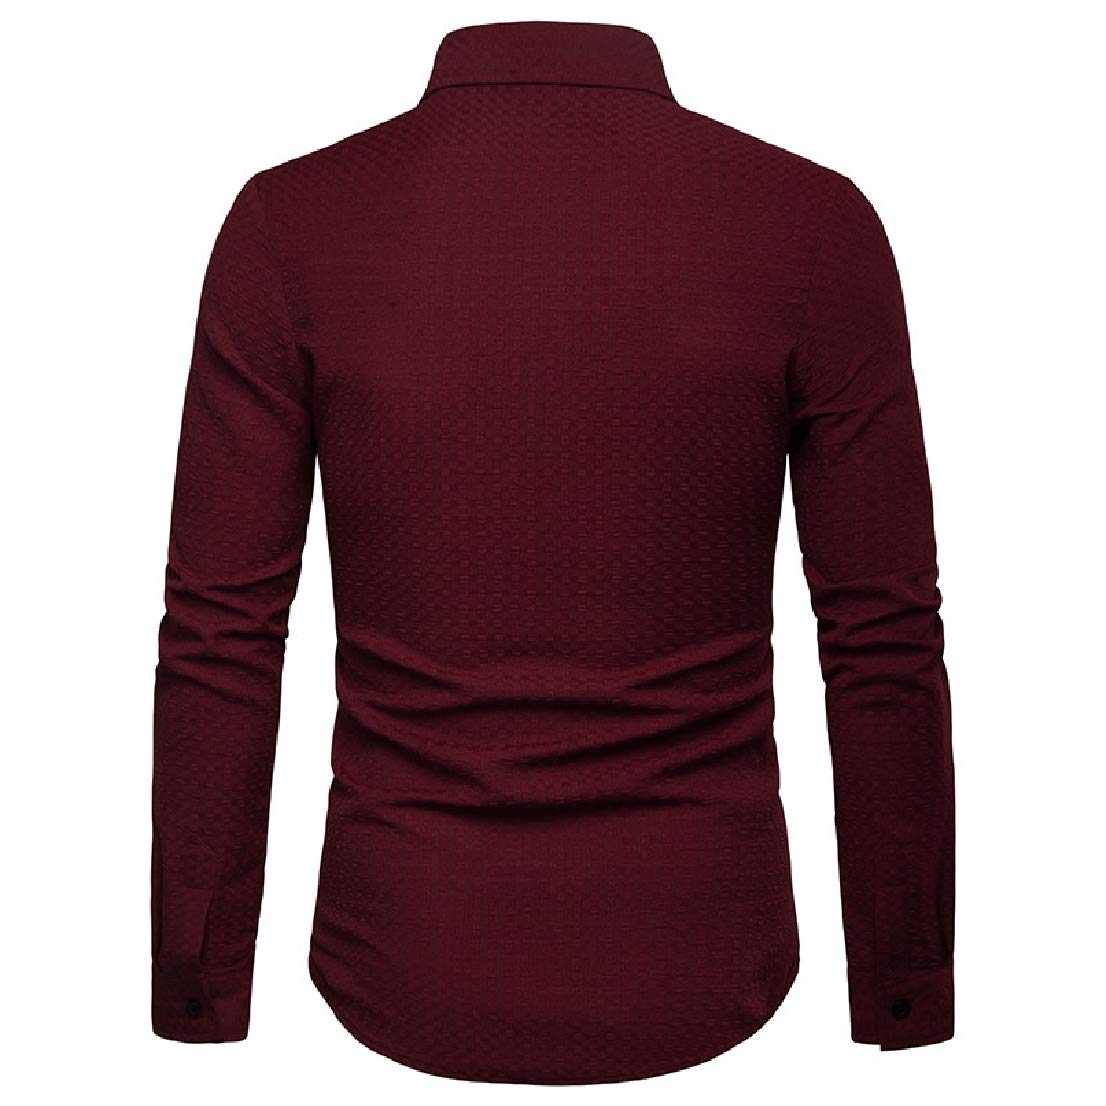 BAYY Mens Long-Sleeve Pure Lapel Relaxed-Fit Casual Shirts